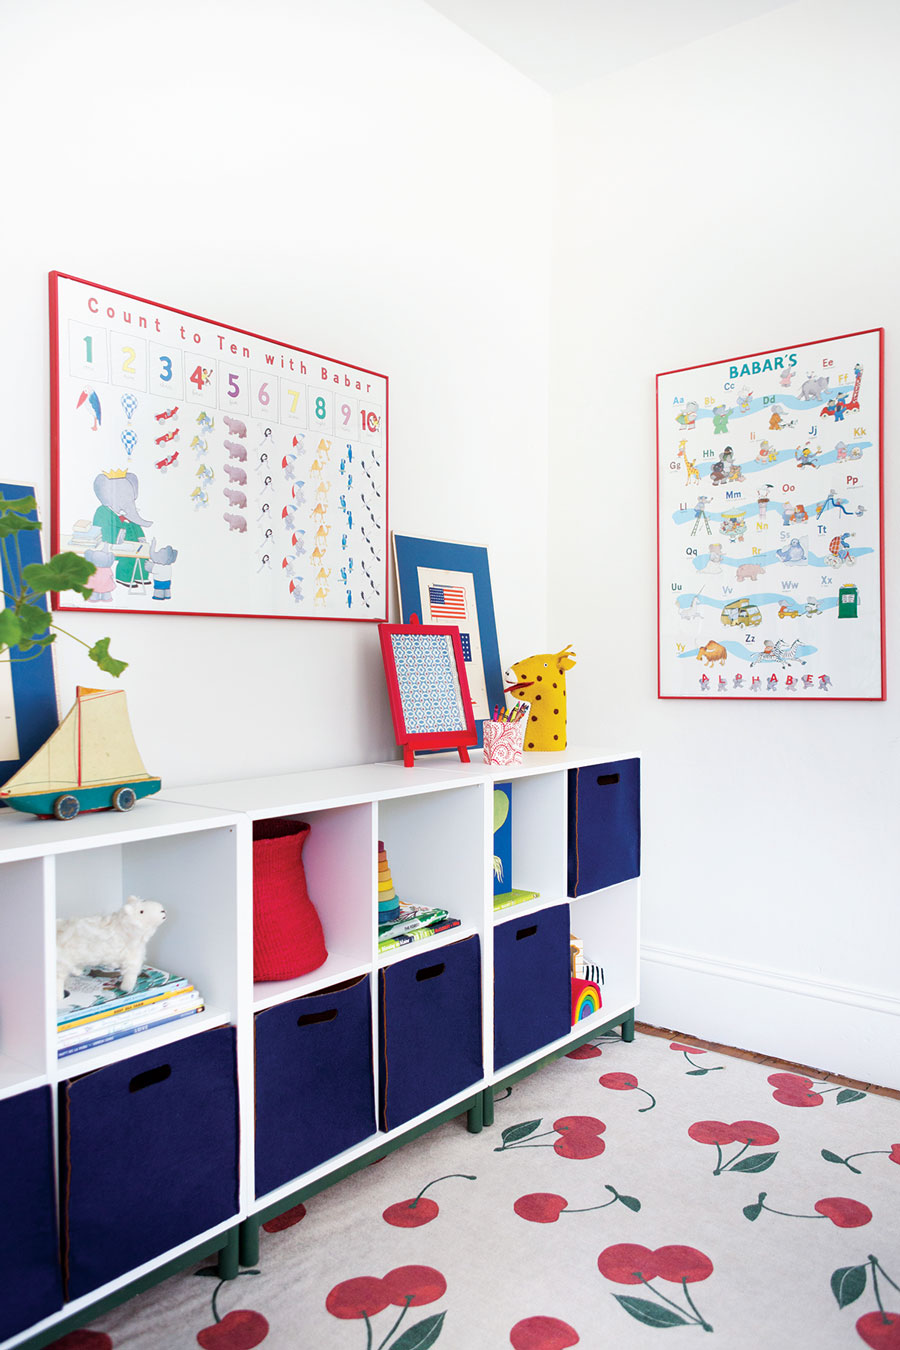 playroom designed by Sarah Storms